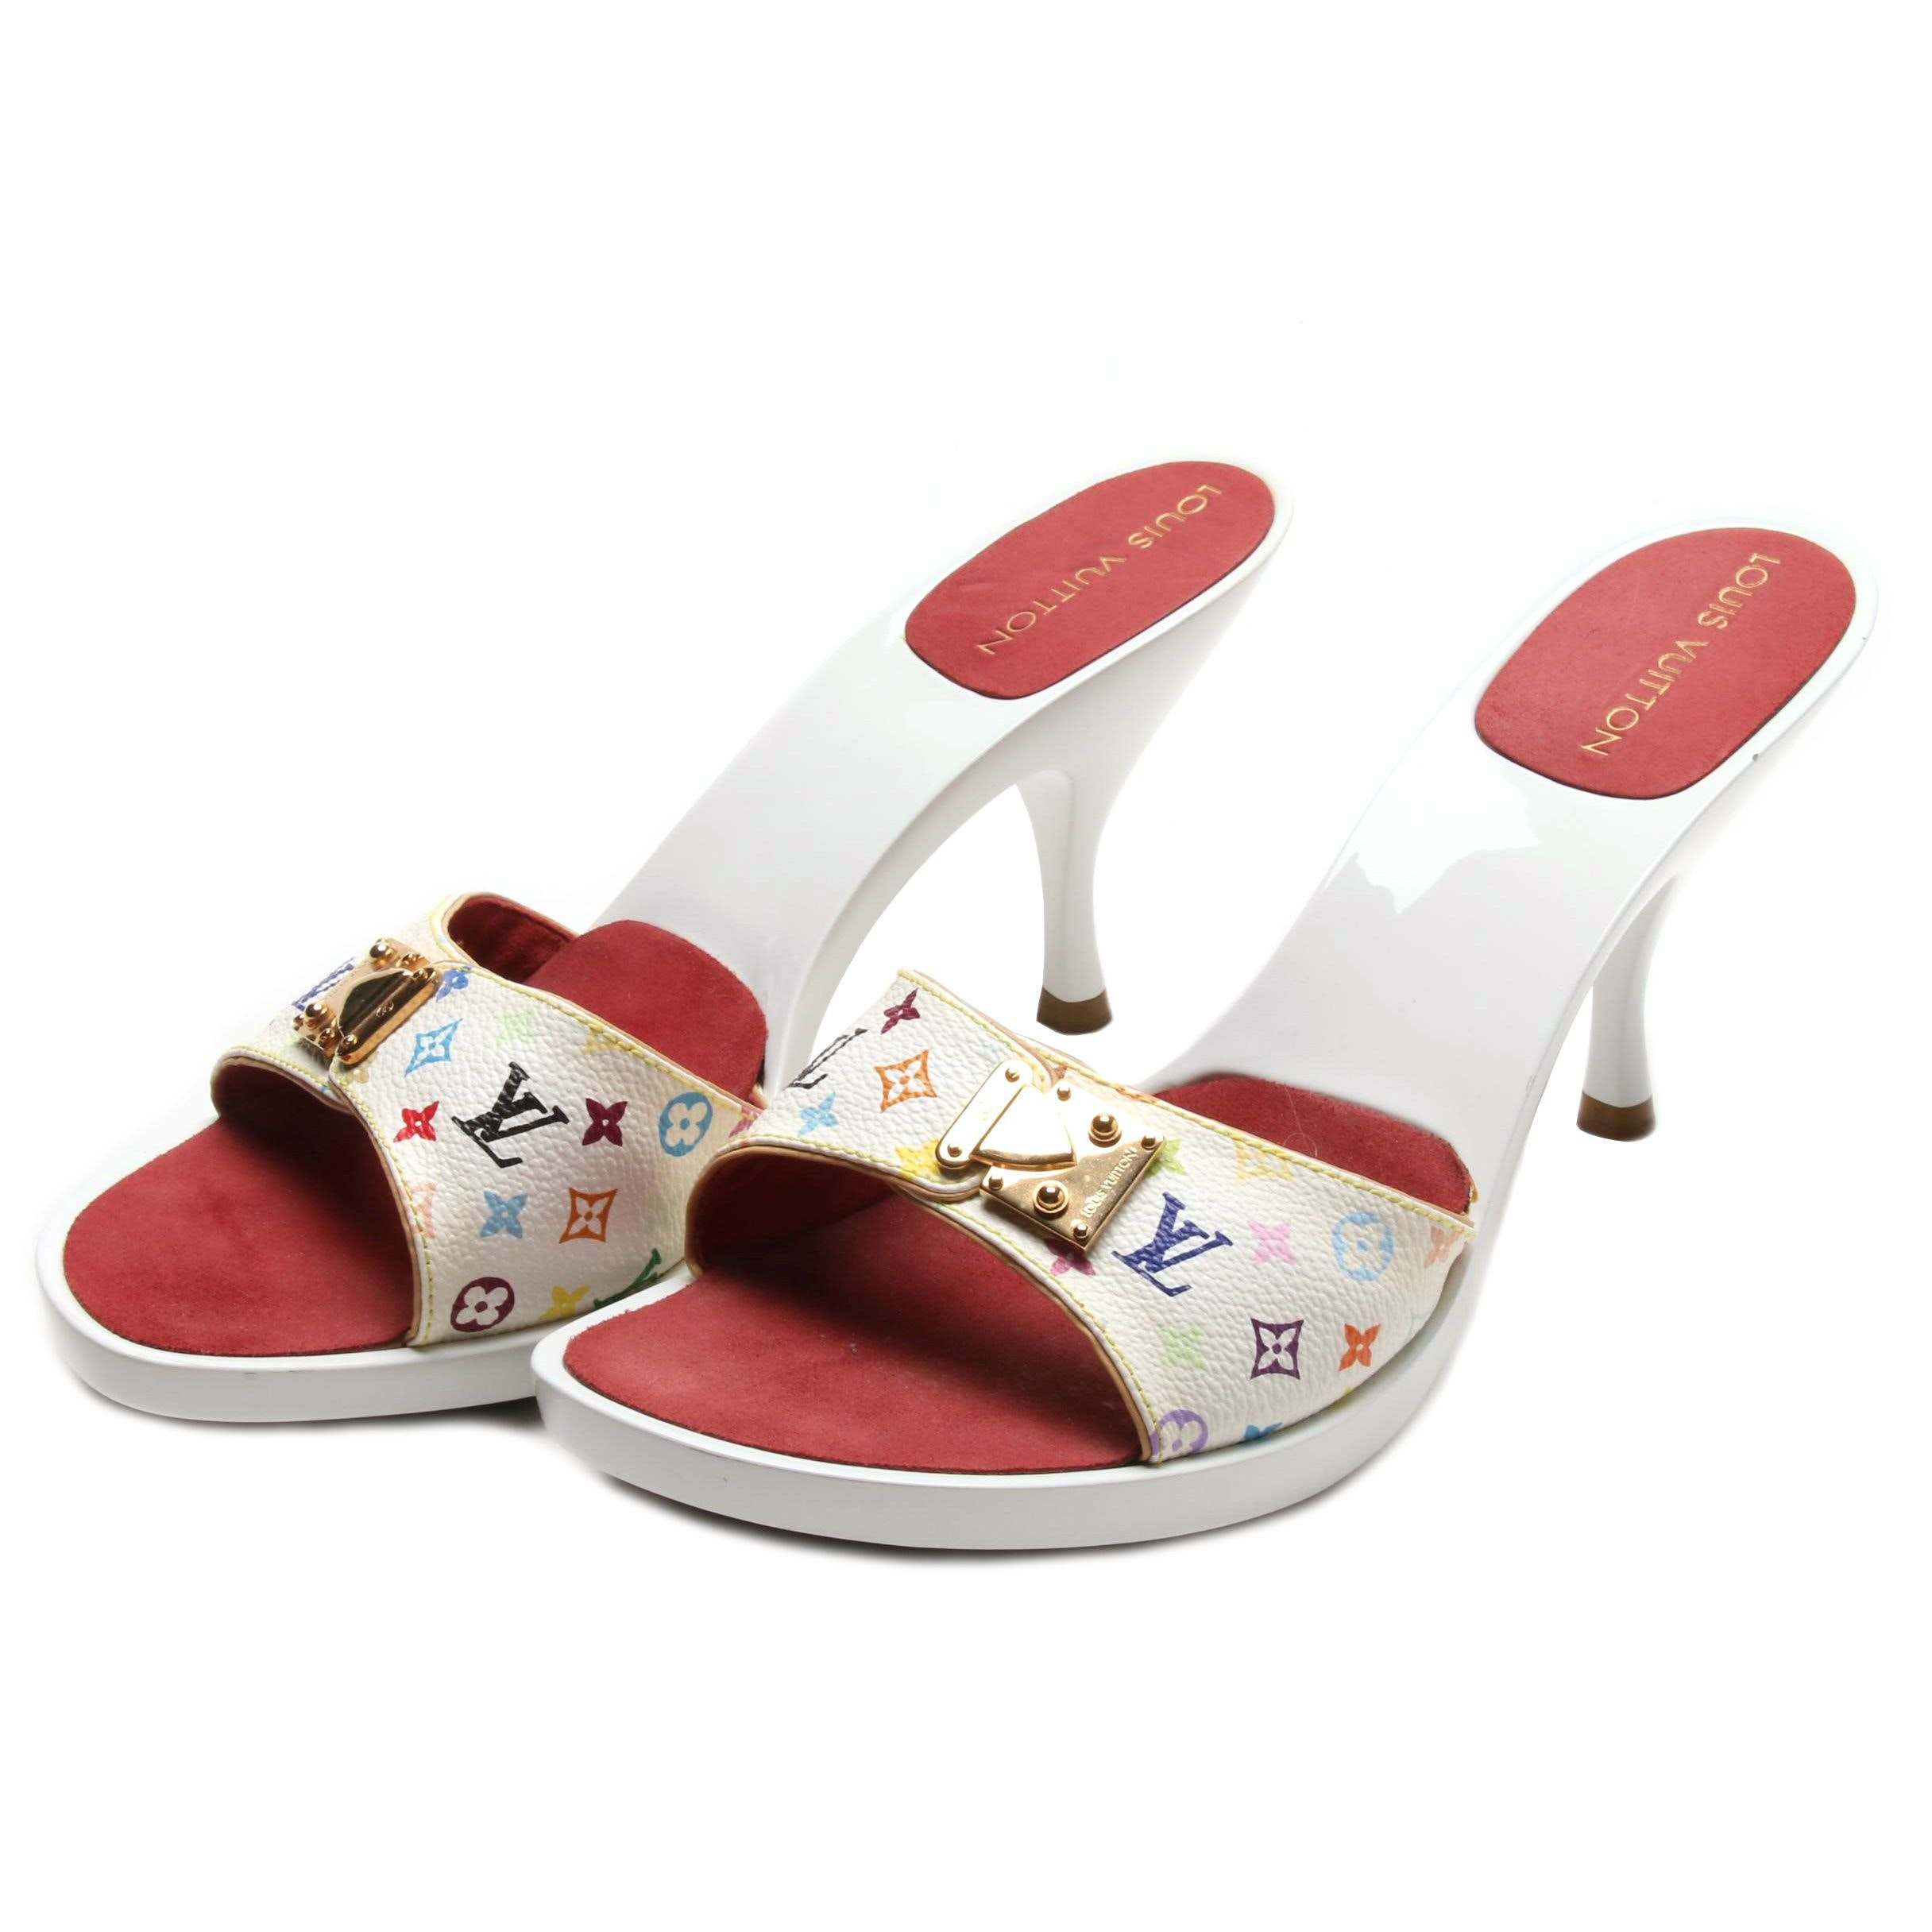 Louis Vuitton Multicolore Monogram Slide Sandals